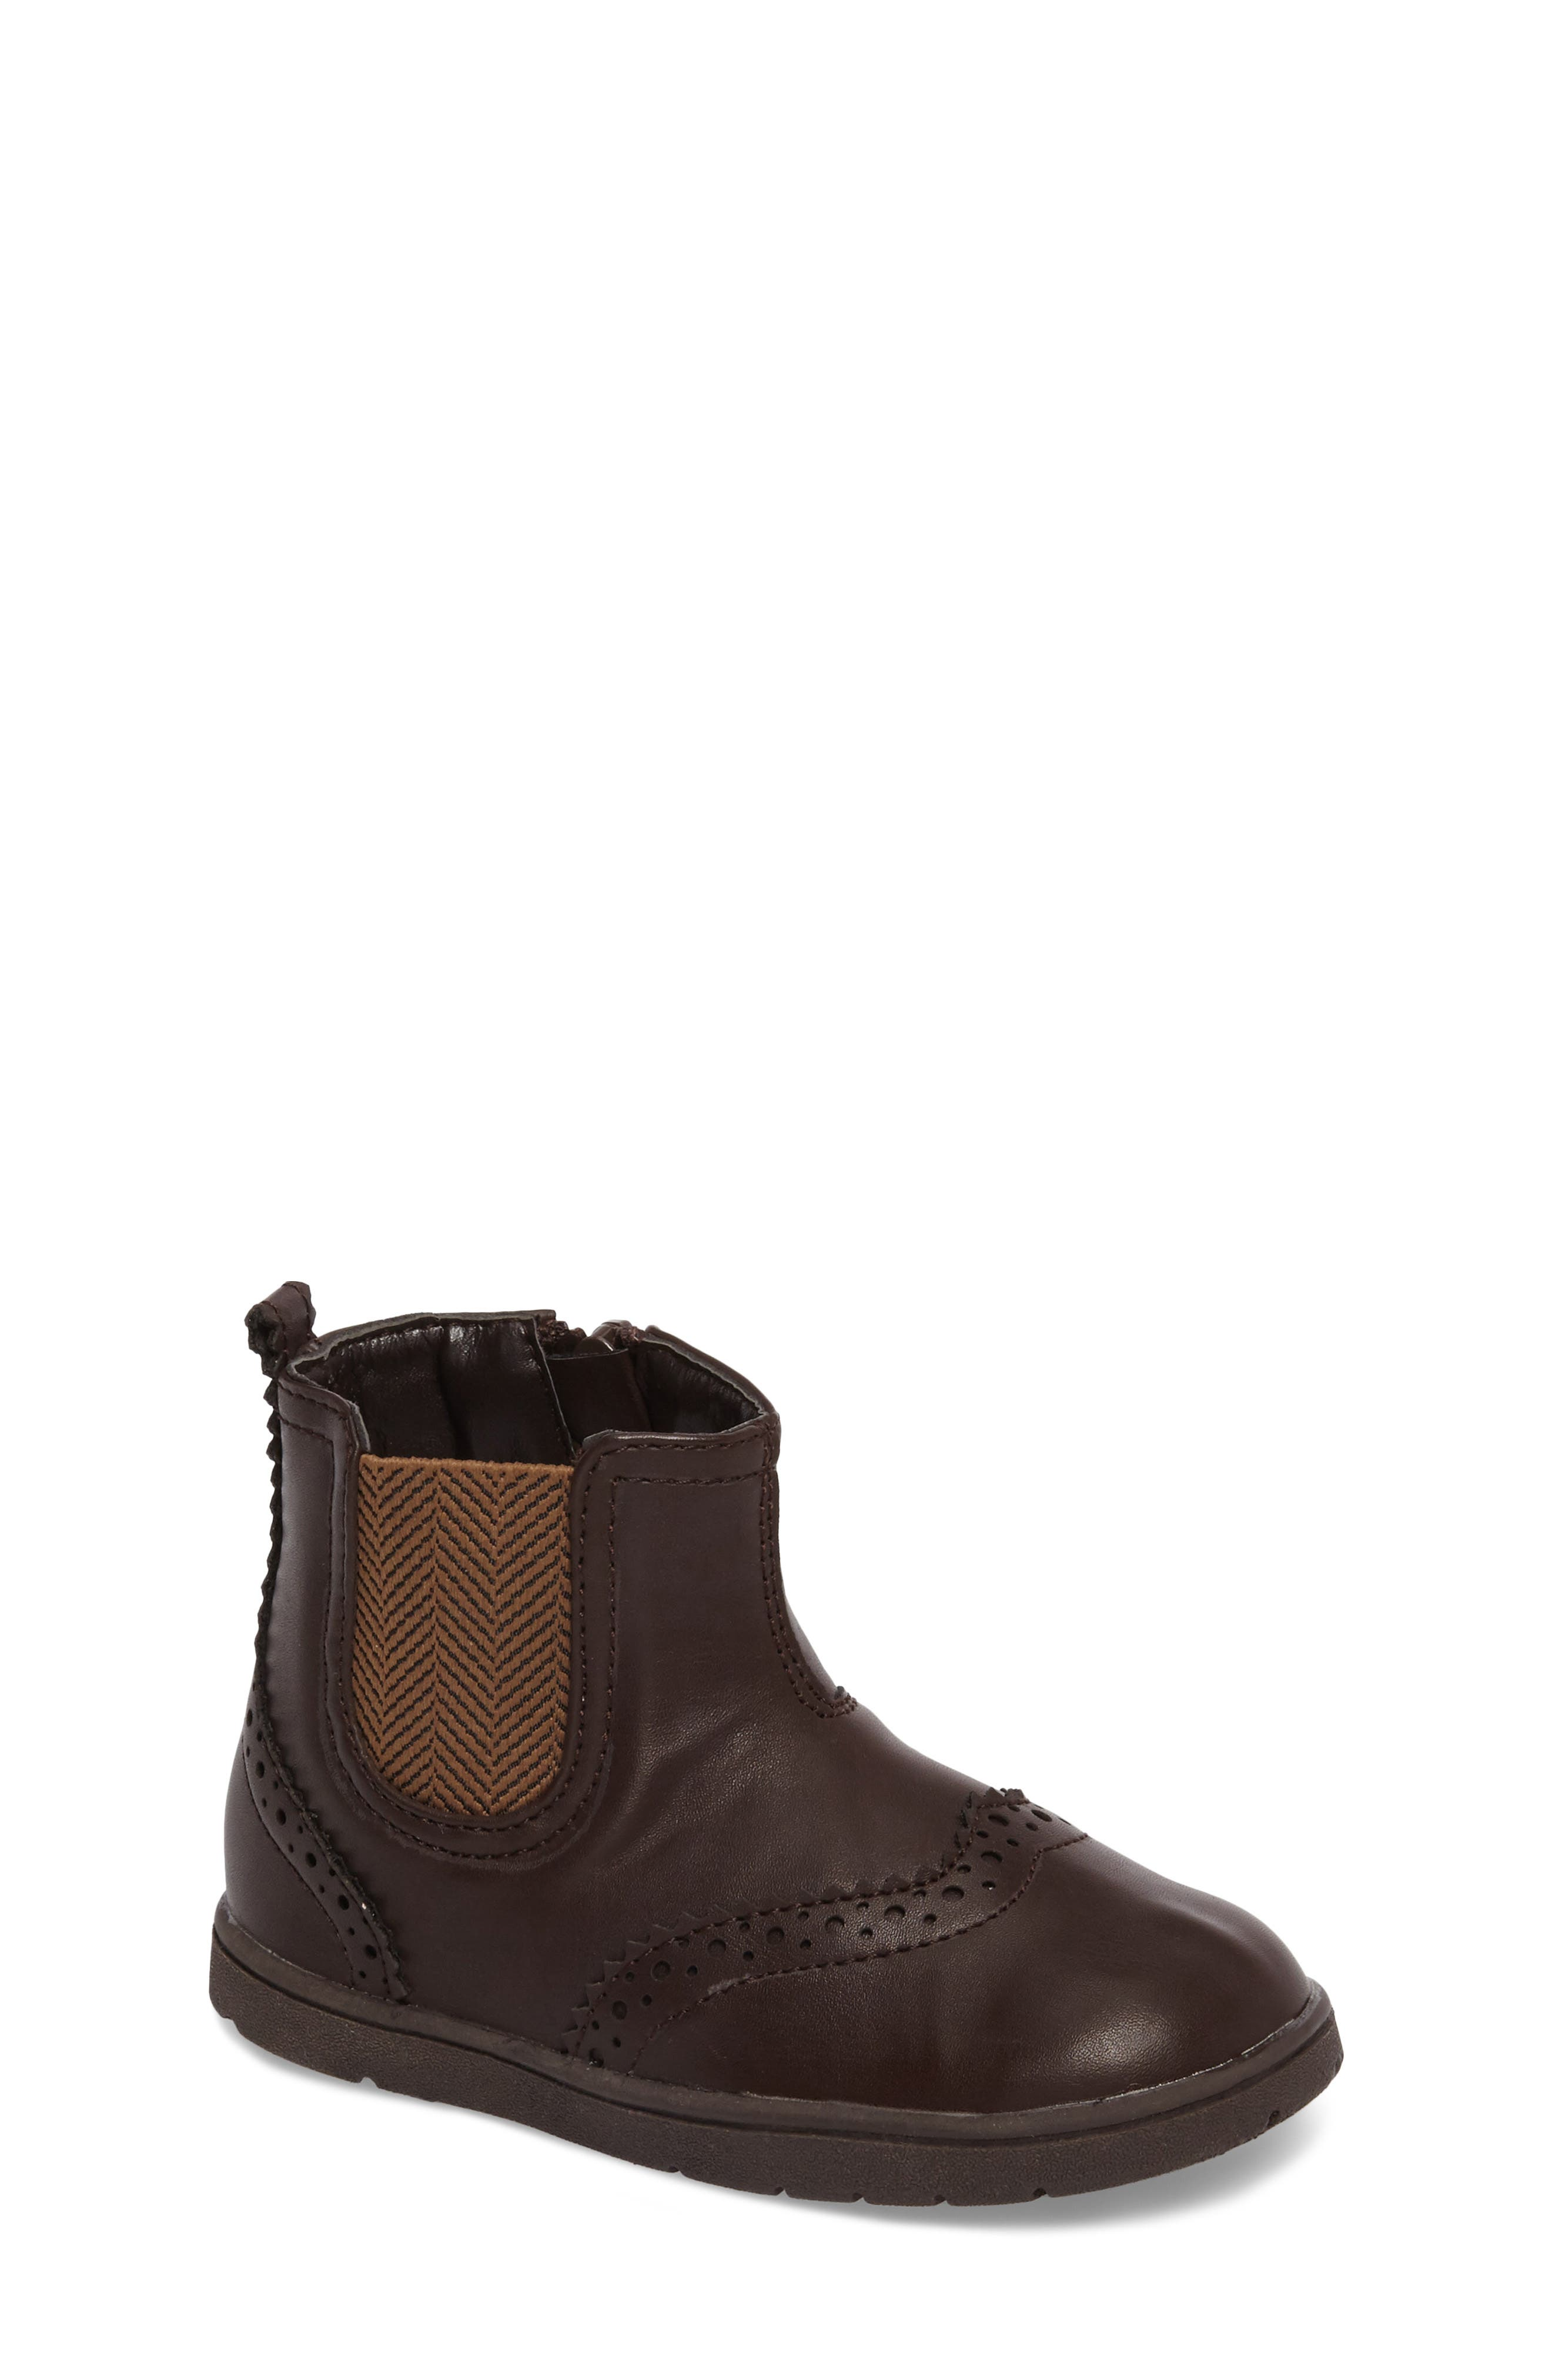 Peace Wing Bootie,                         Main,                         color,